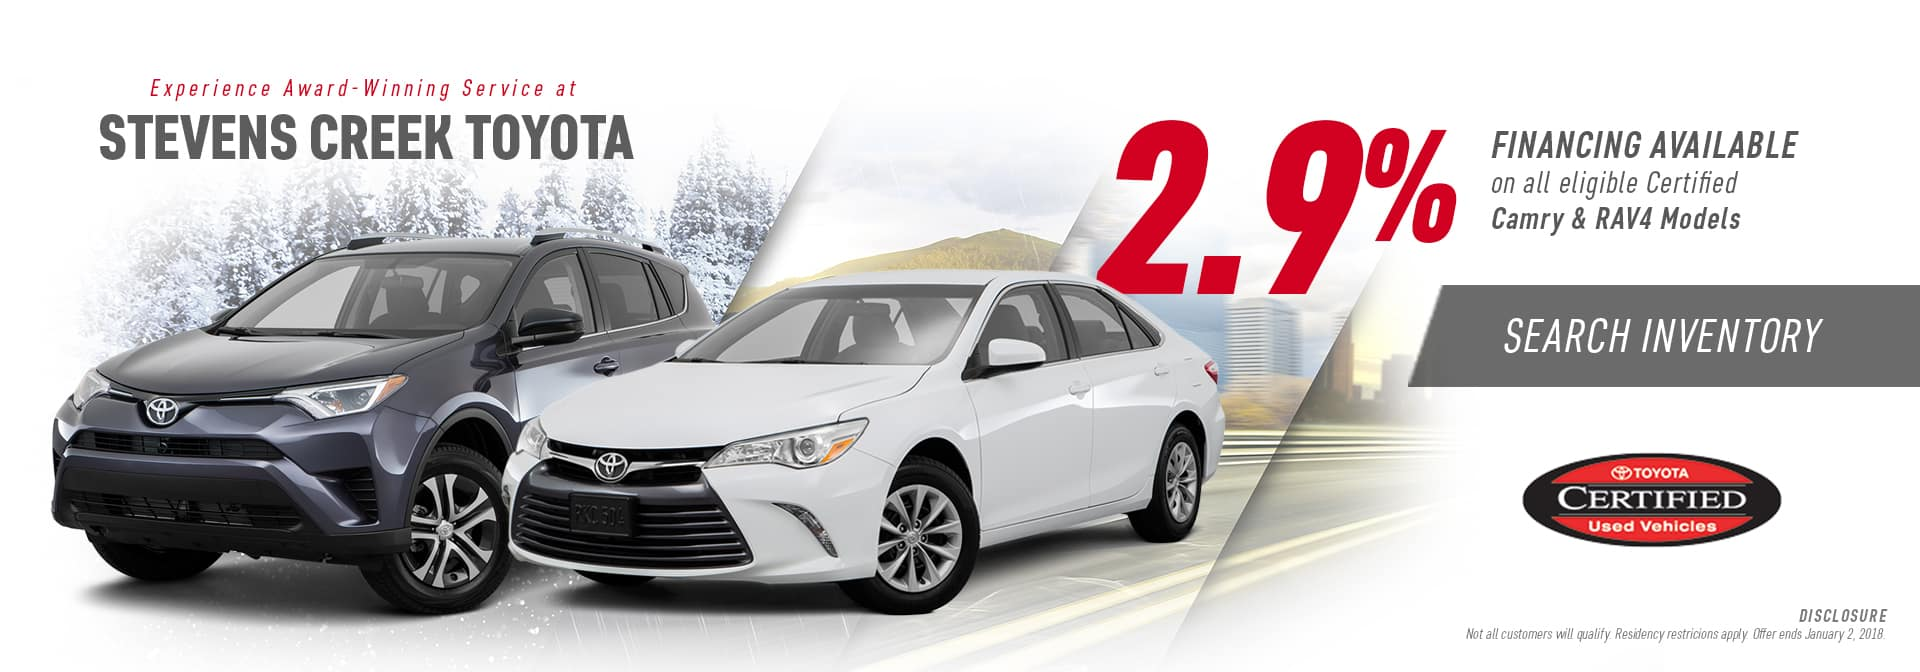 Stevens Creek Lexus Used Cars >> Toyota And Used Car Dealer San Jose Stevens Creek Toyota | Autos Post